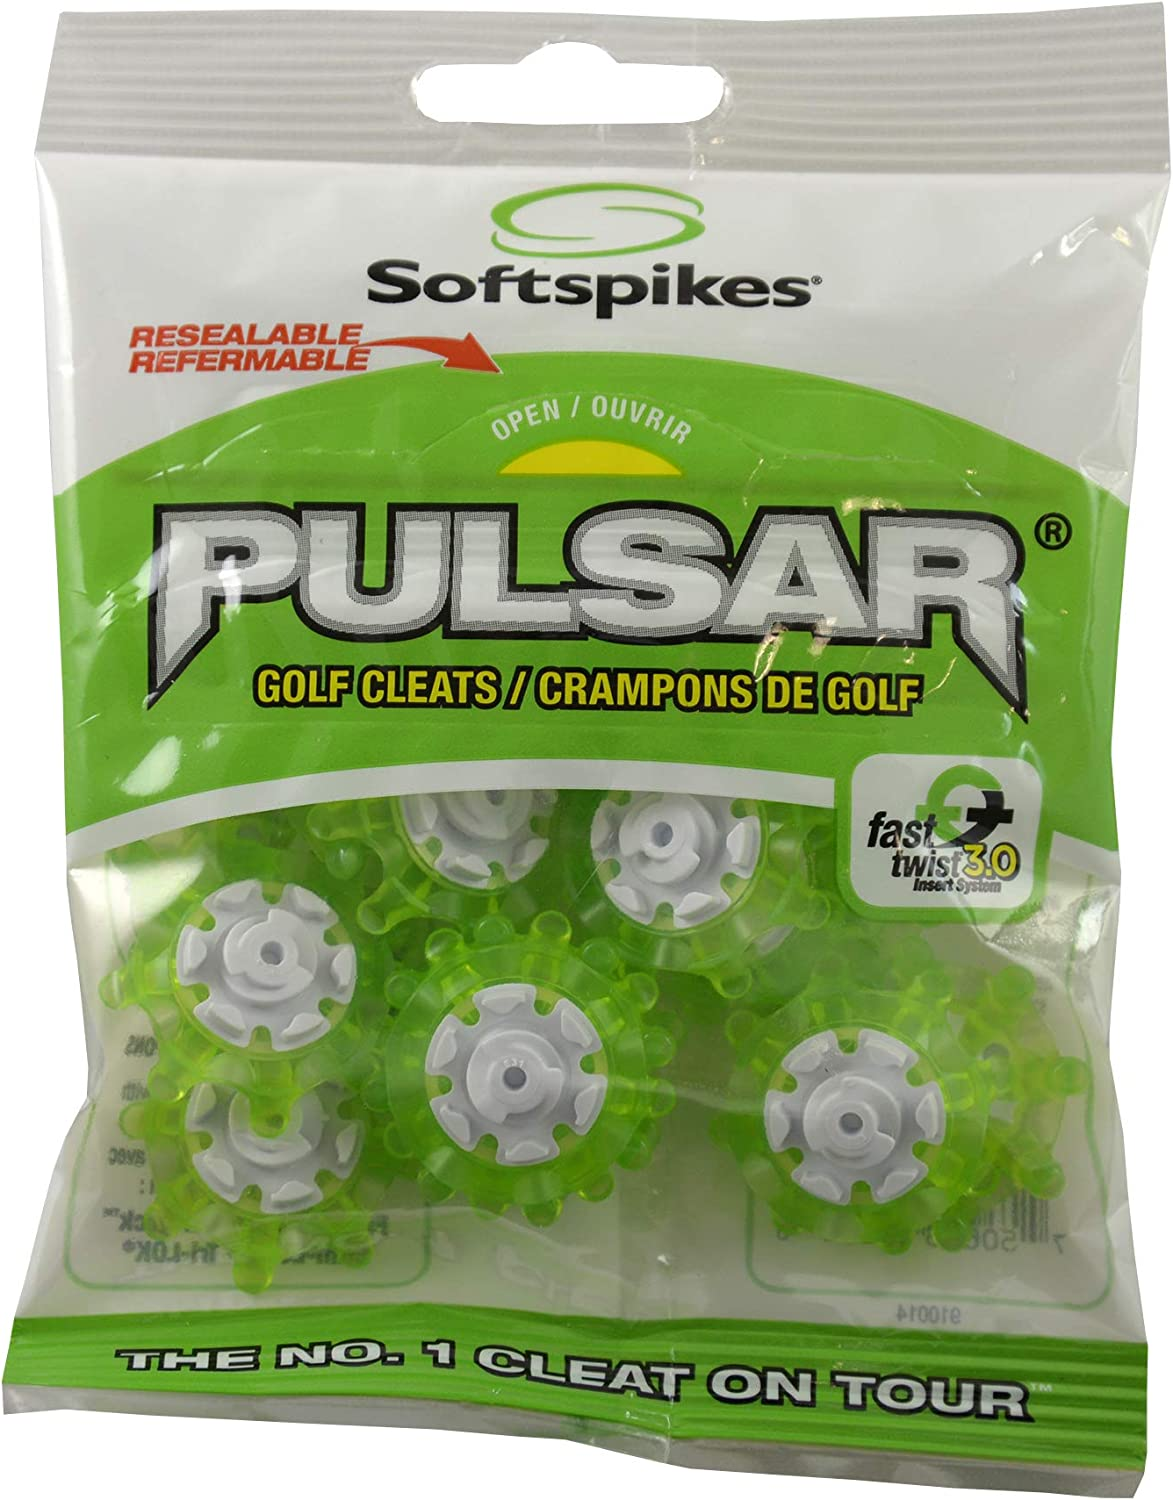 Softspikes Pulsar Golf sale Cleats Fast Green Department store 3.0 - Twist